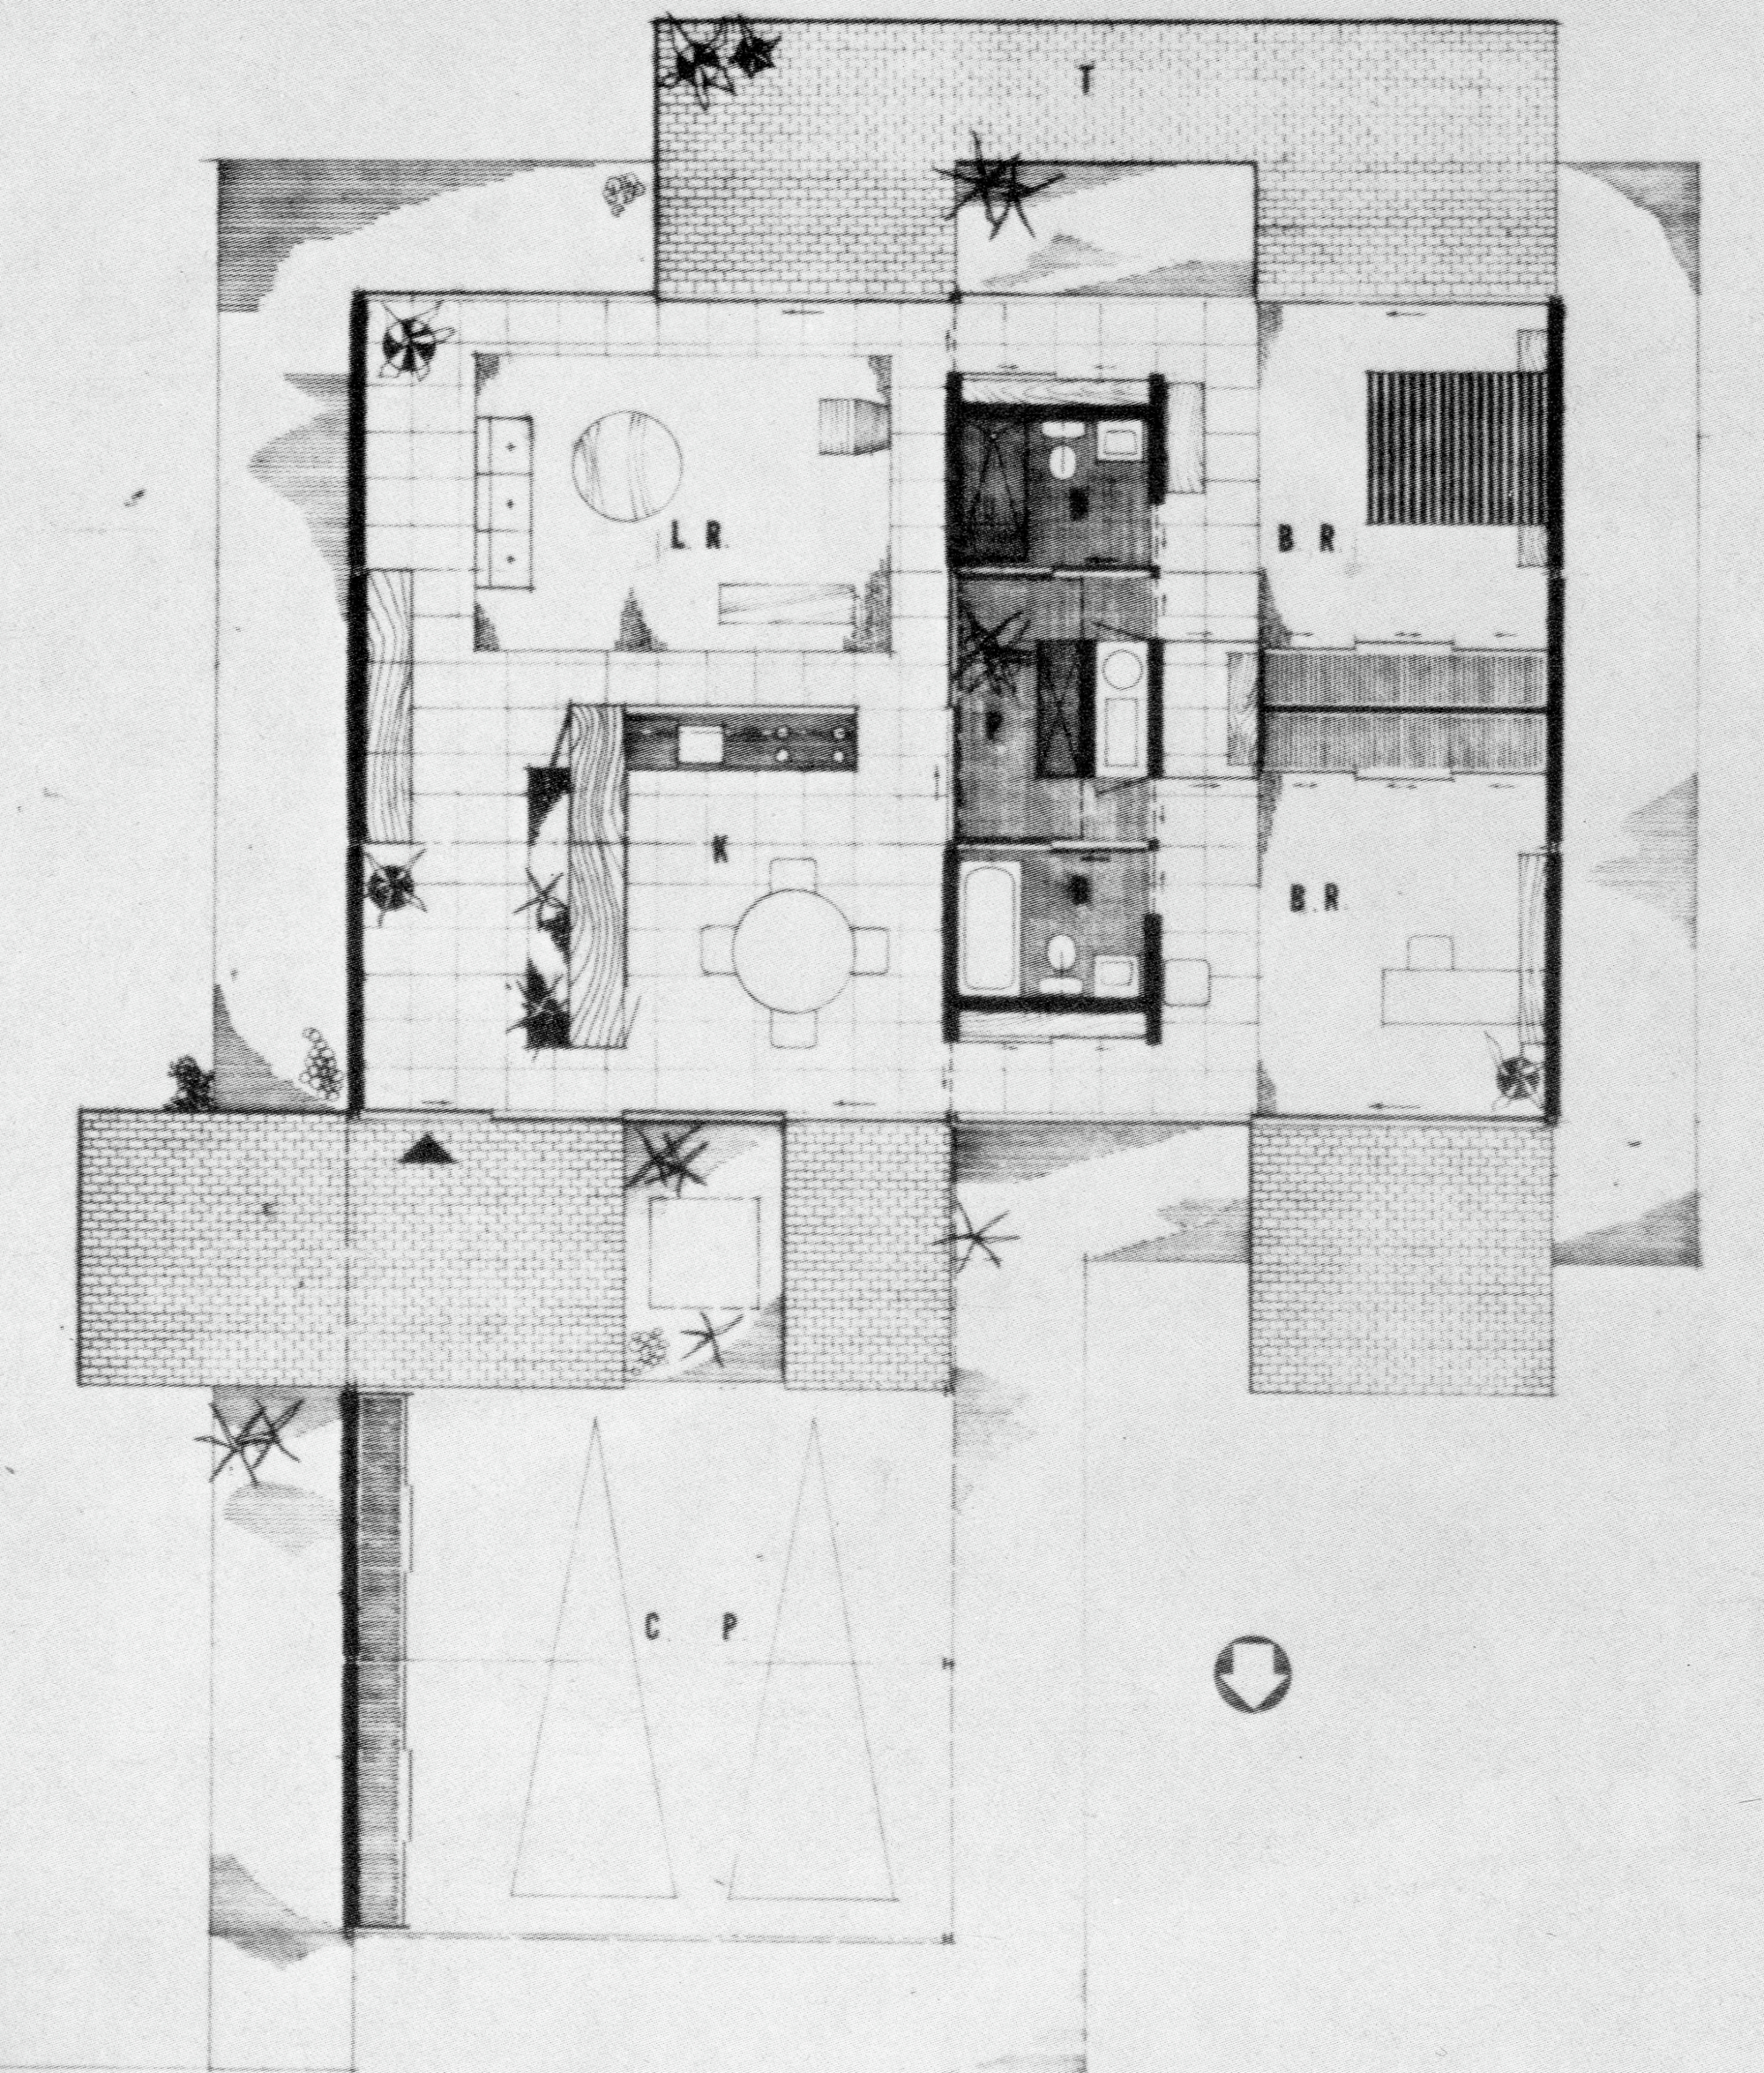 Bailey House Plan, Case Study House No. 1, Pierre Koenig. 1958